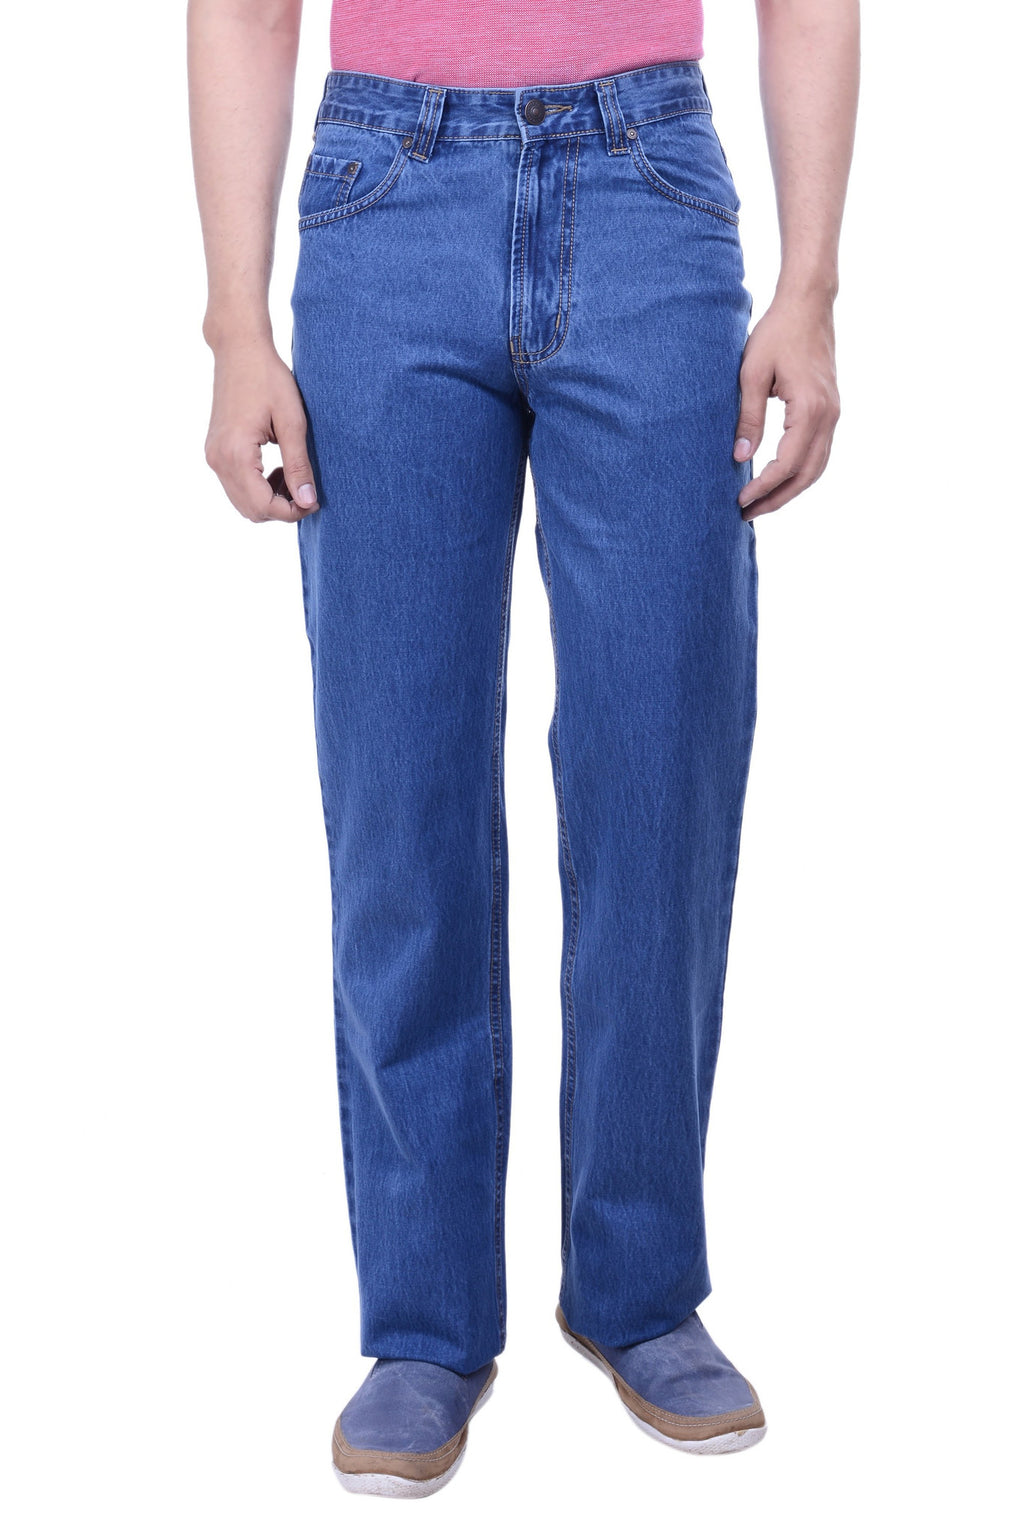 Semibleach Cowboy Silky Denim SD2102